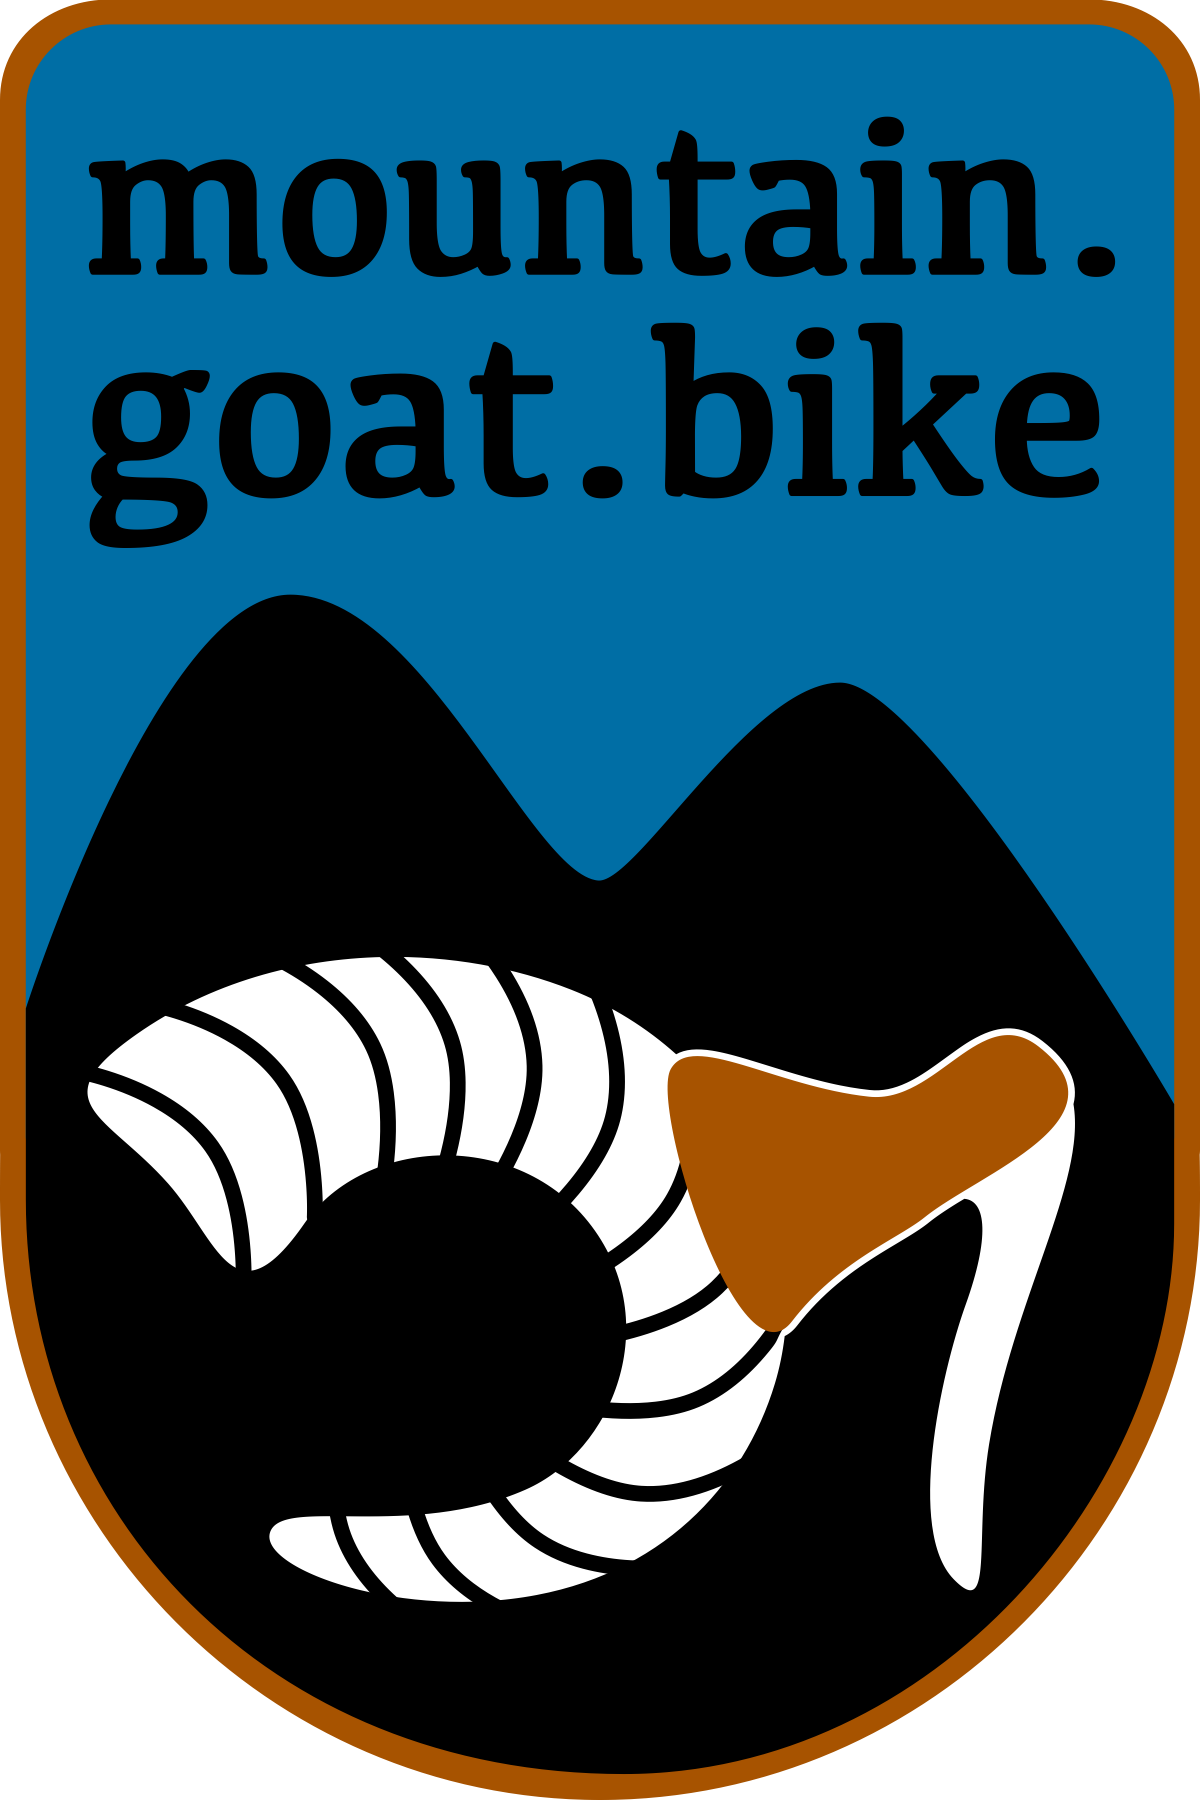 mountain.goat.bike